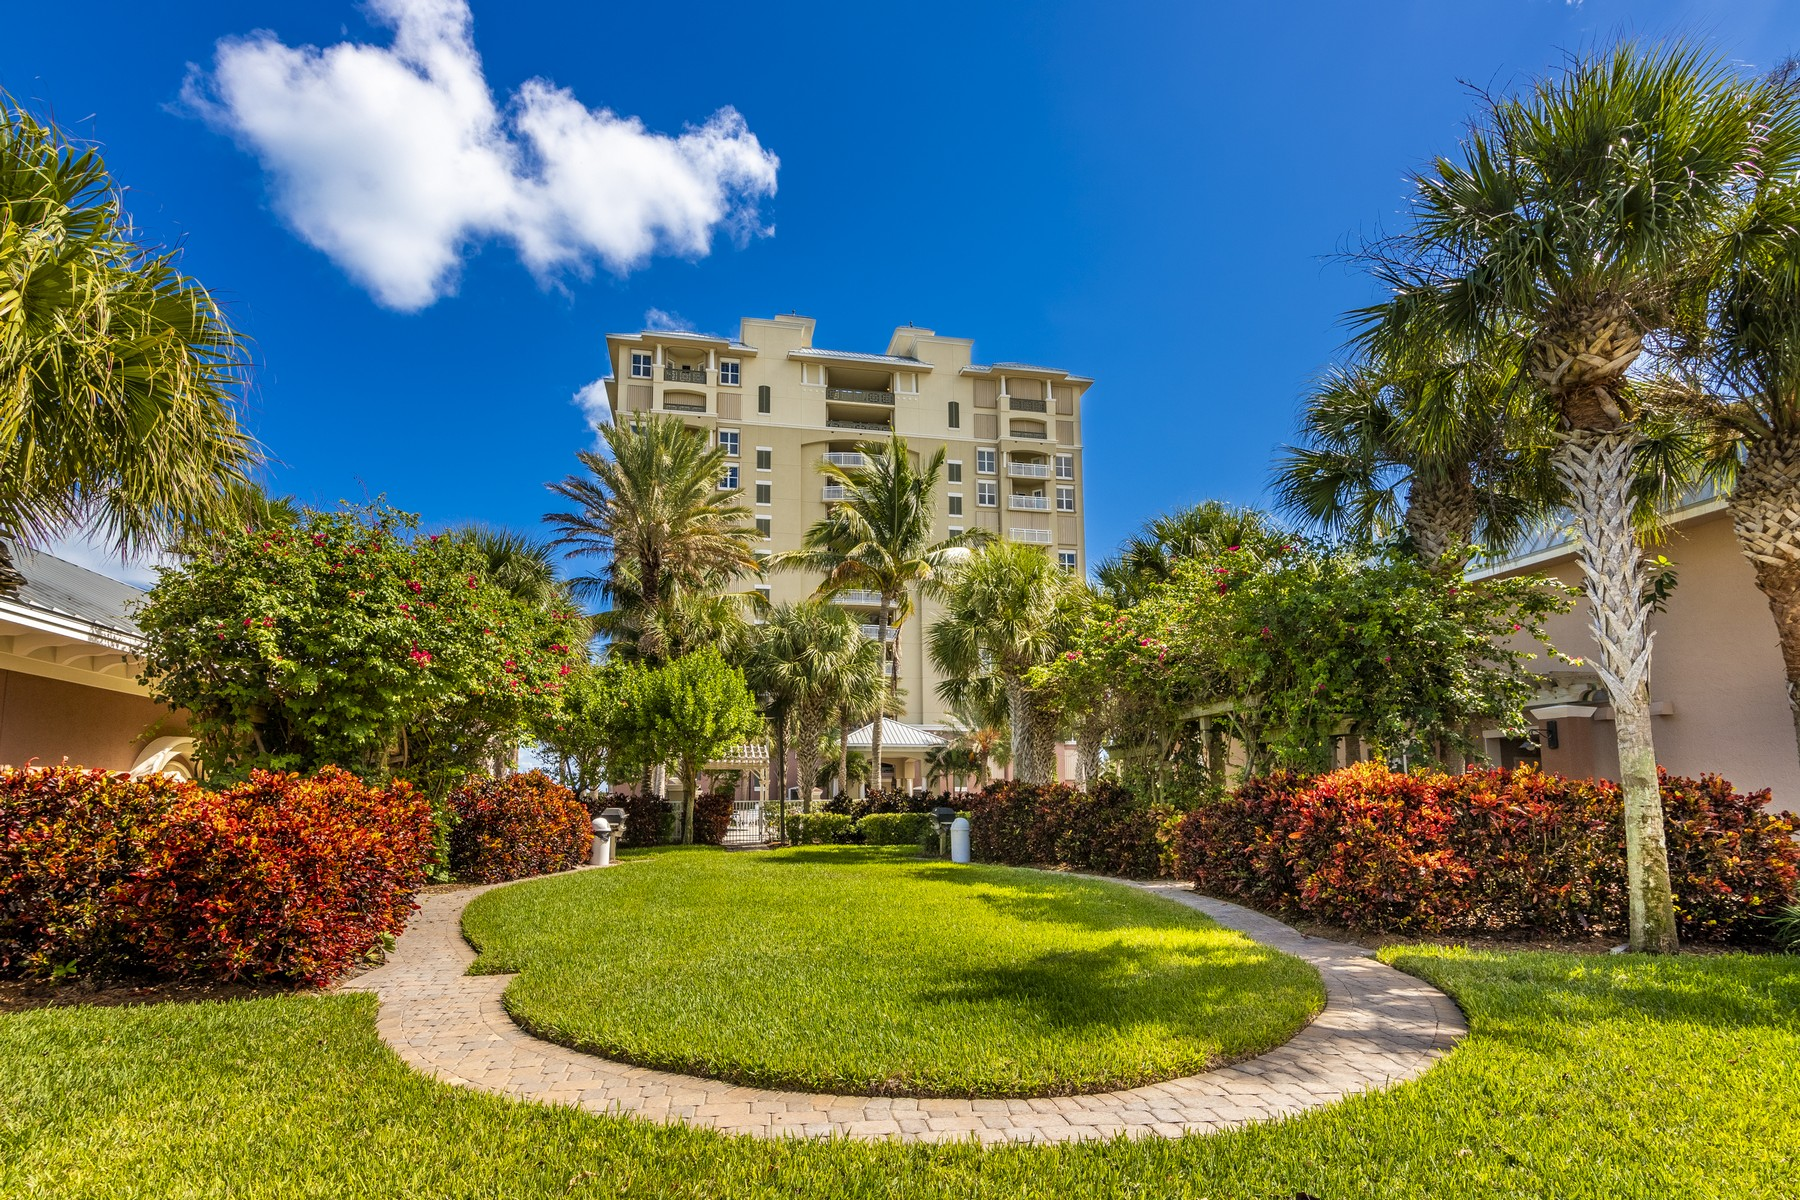 Condominiums for Sale at Luxurious Condo Captures the Ocean 3702 N Highway A1A Unit 304, Hutchinson Island, Florida 34949 United States